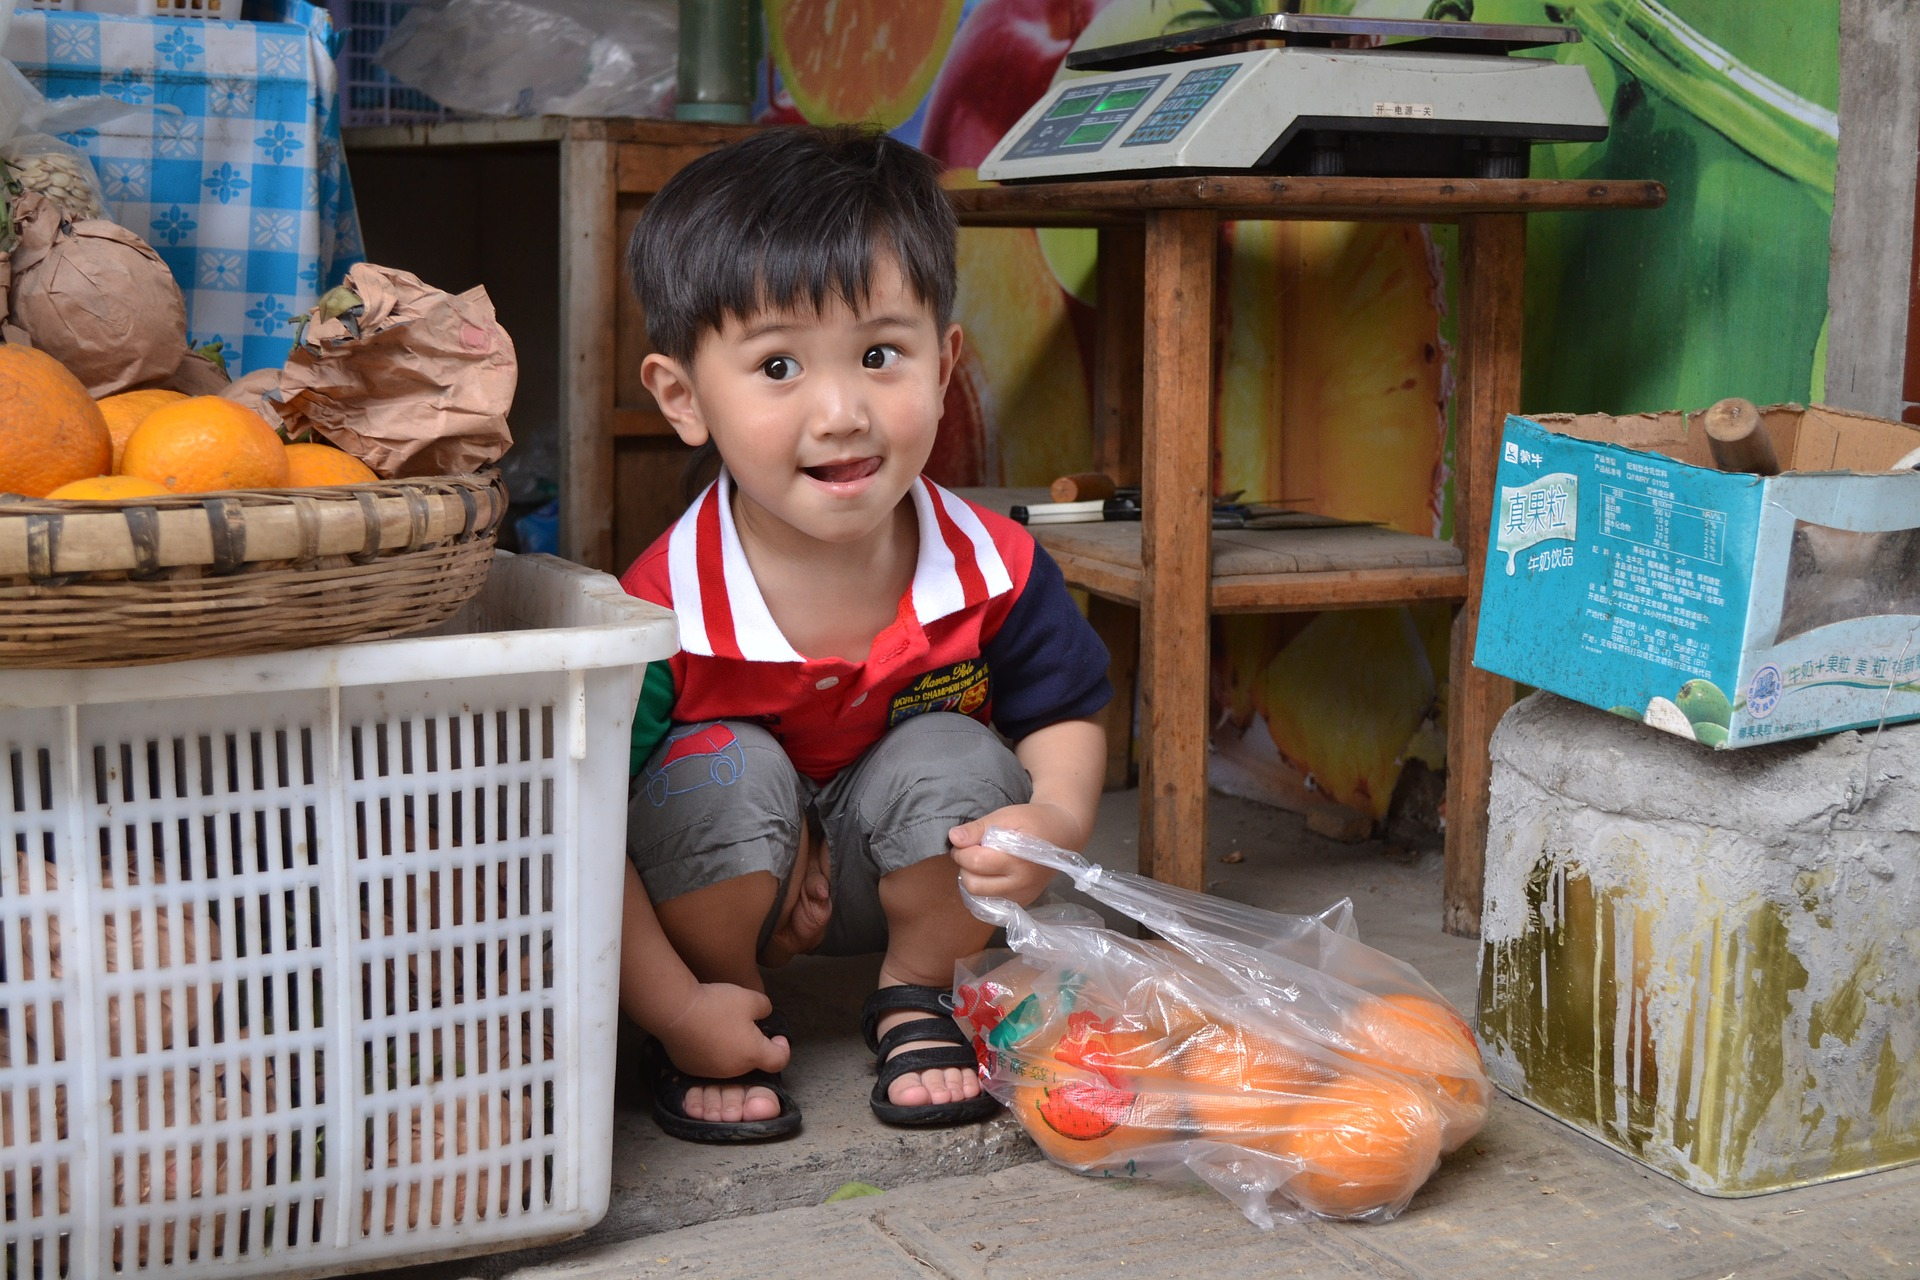 An Asian boy squatting on the ground and holding a bag of oranges.